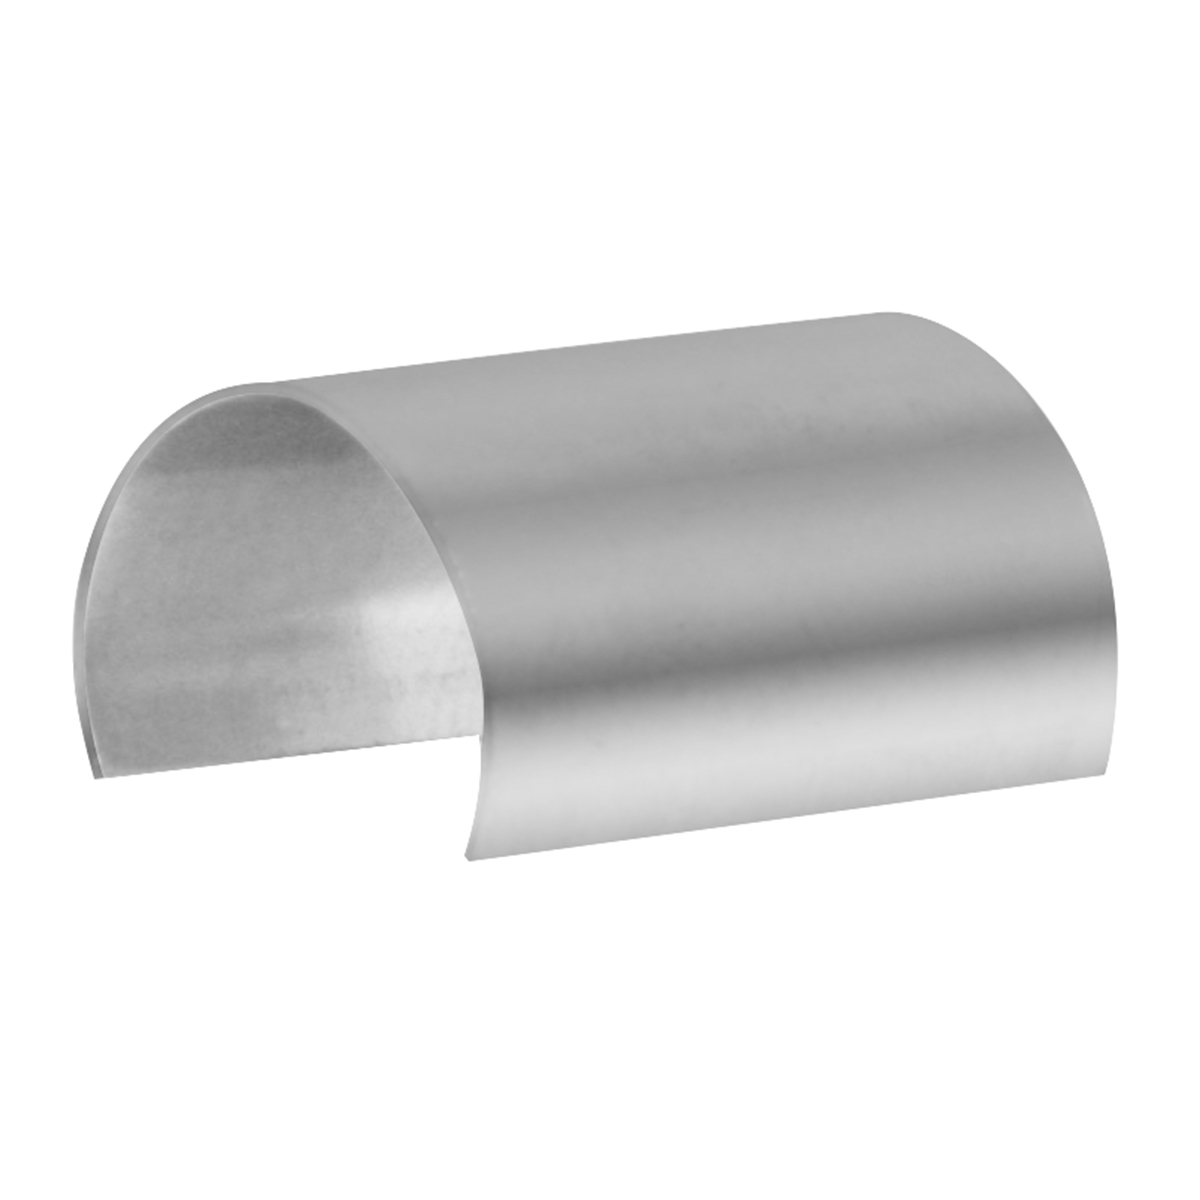 50172 Stainless Steel Door Hinge Cover